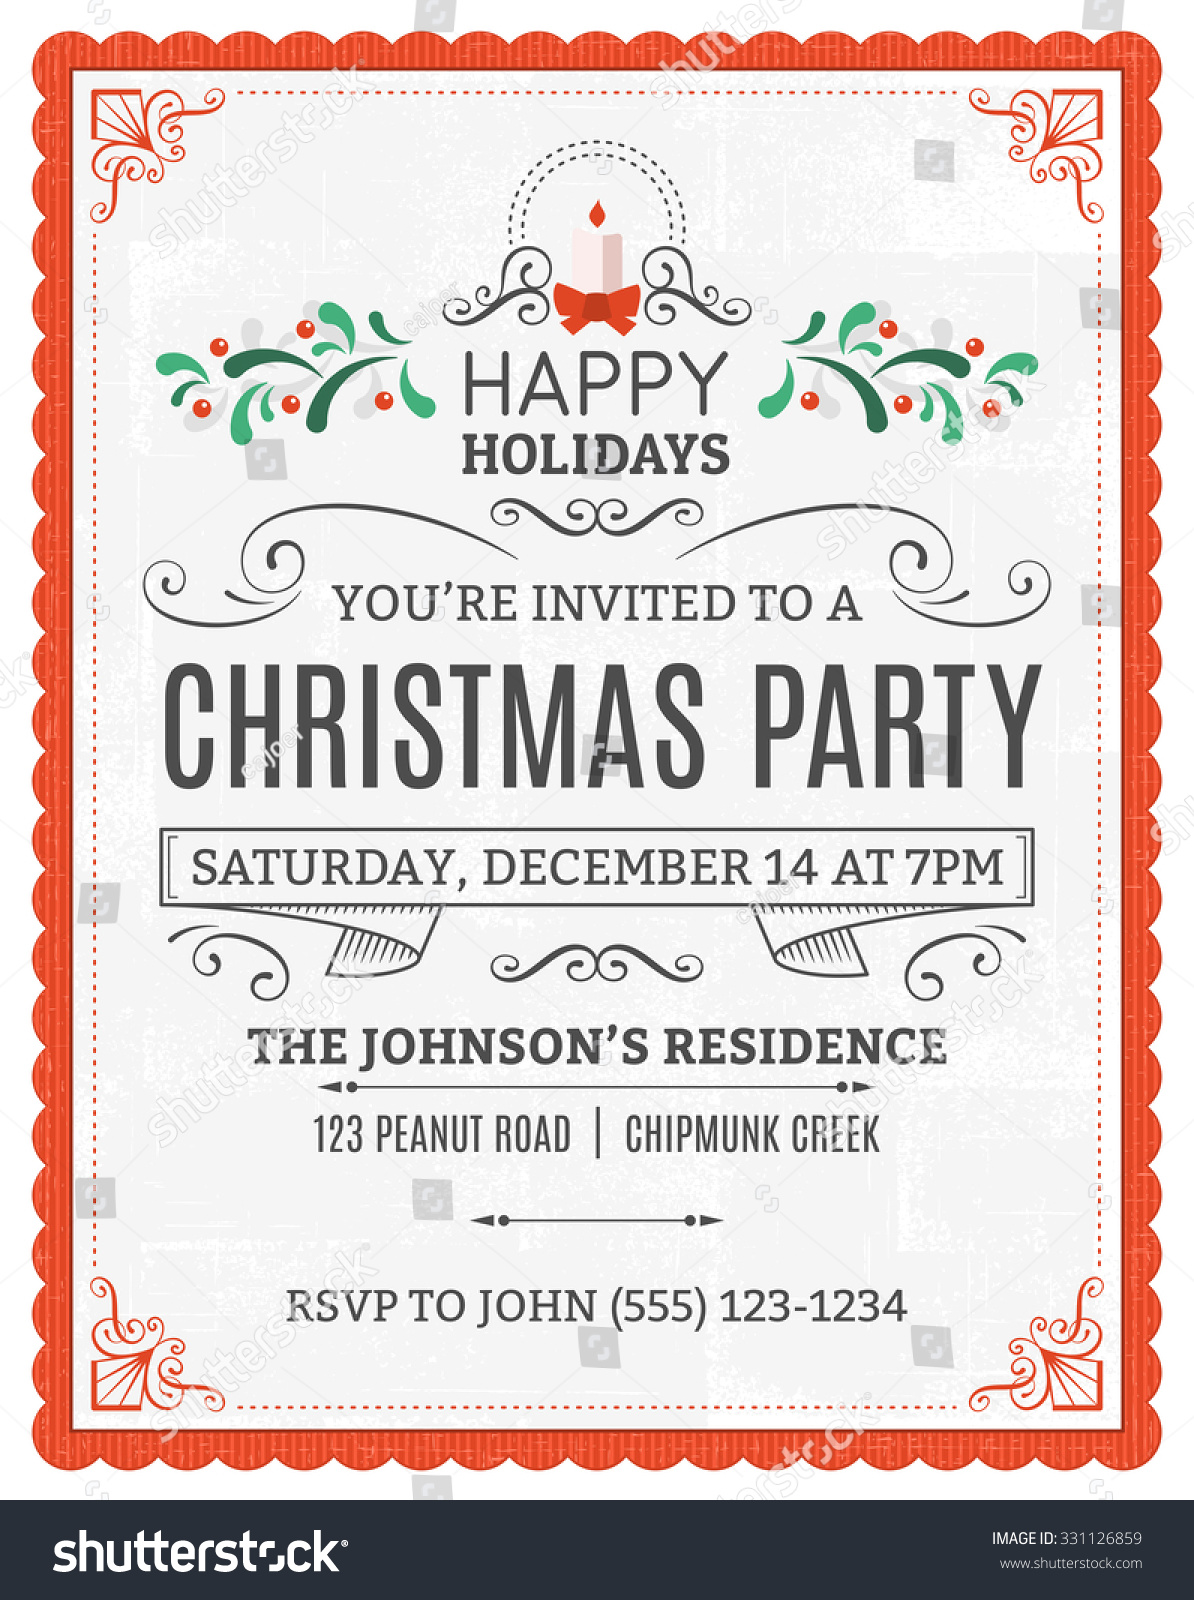 Free Templates For Invitations Printable is best invitations template